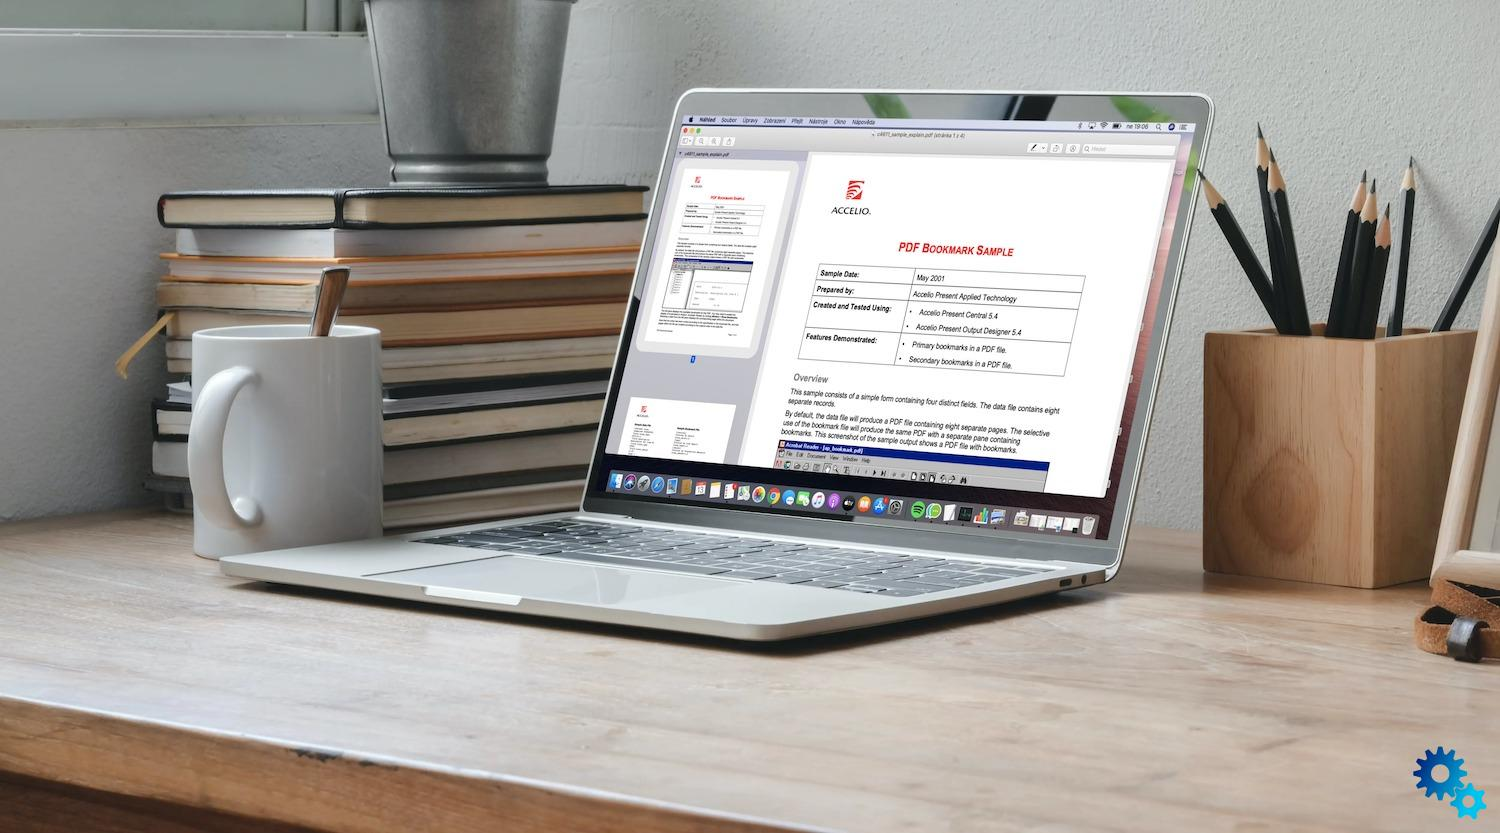 How to open a page on your Mac in Safari without active ad blockers